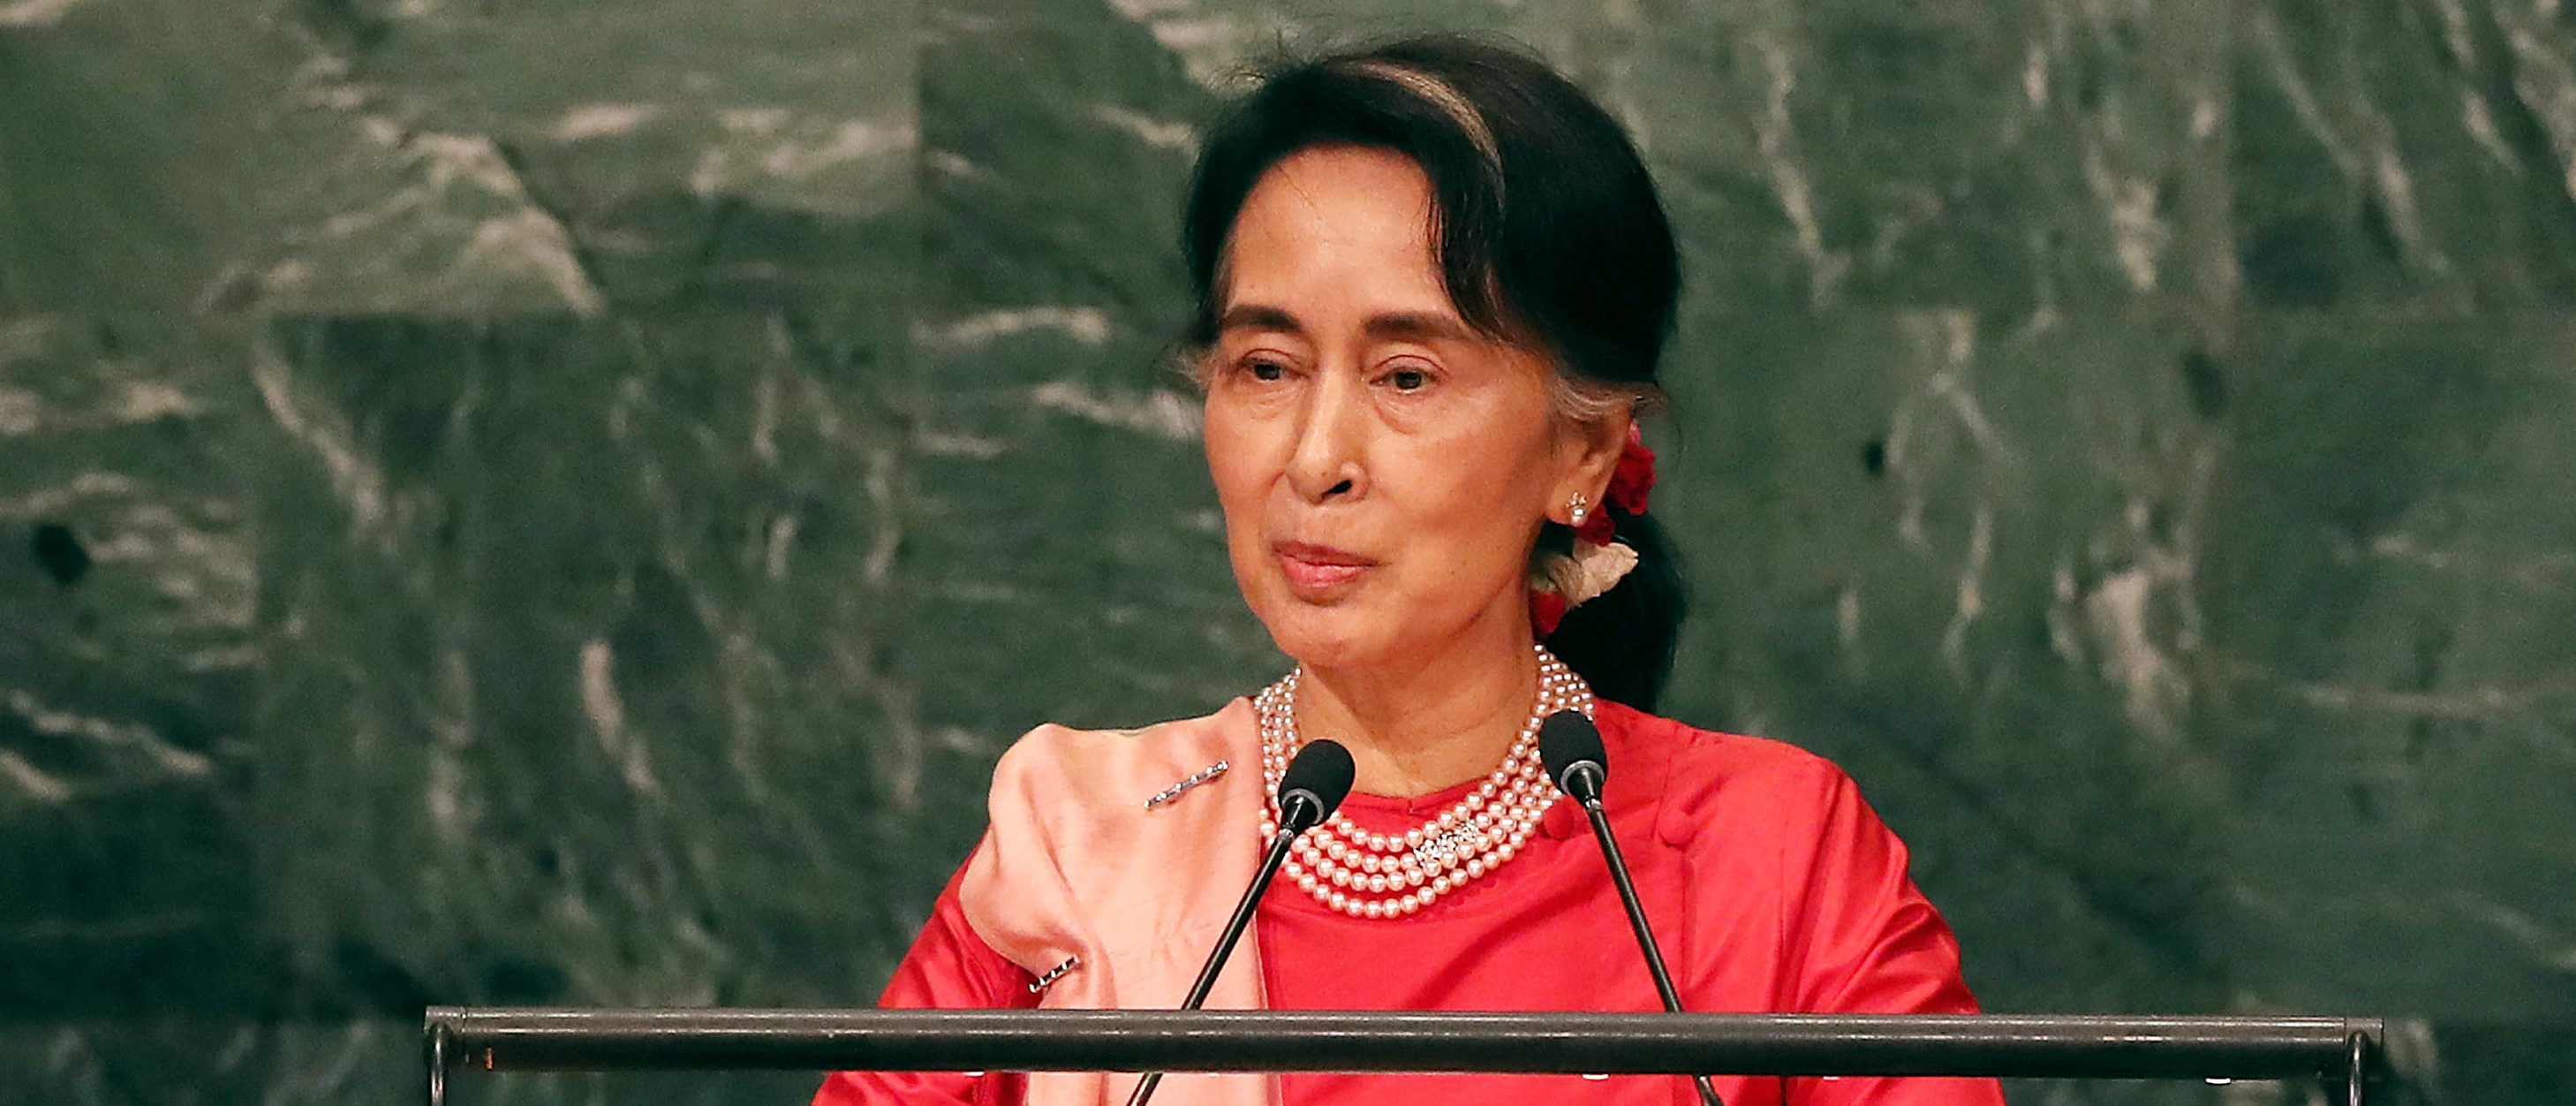 Myanmar leader Aung San Suu Kyi addresses the General Assembly at the United Nations on September 21, 2016 in New York City. Presidents, prime ministers, monarchs and ministers are gathering this week for the United Nation's General Assembly's annual ministerial meeting. (Photo by Spencer Platt/Getty Images)